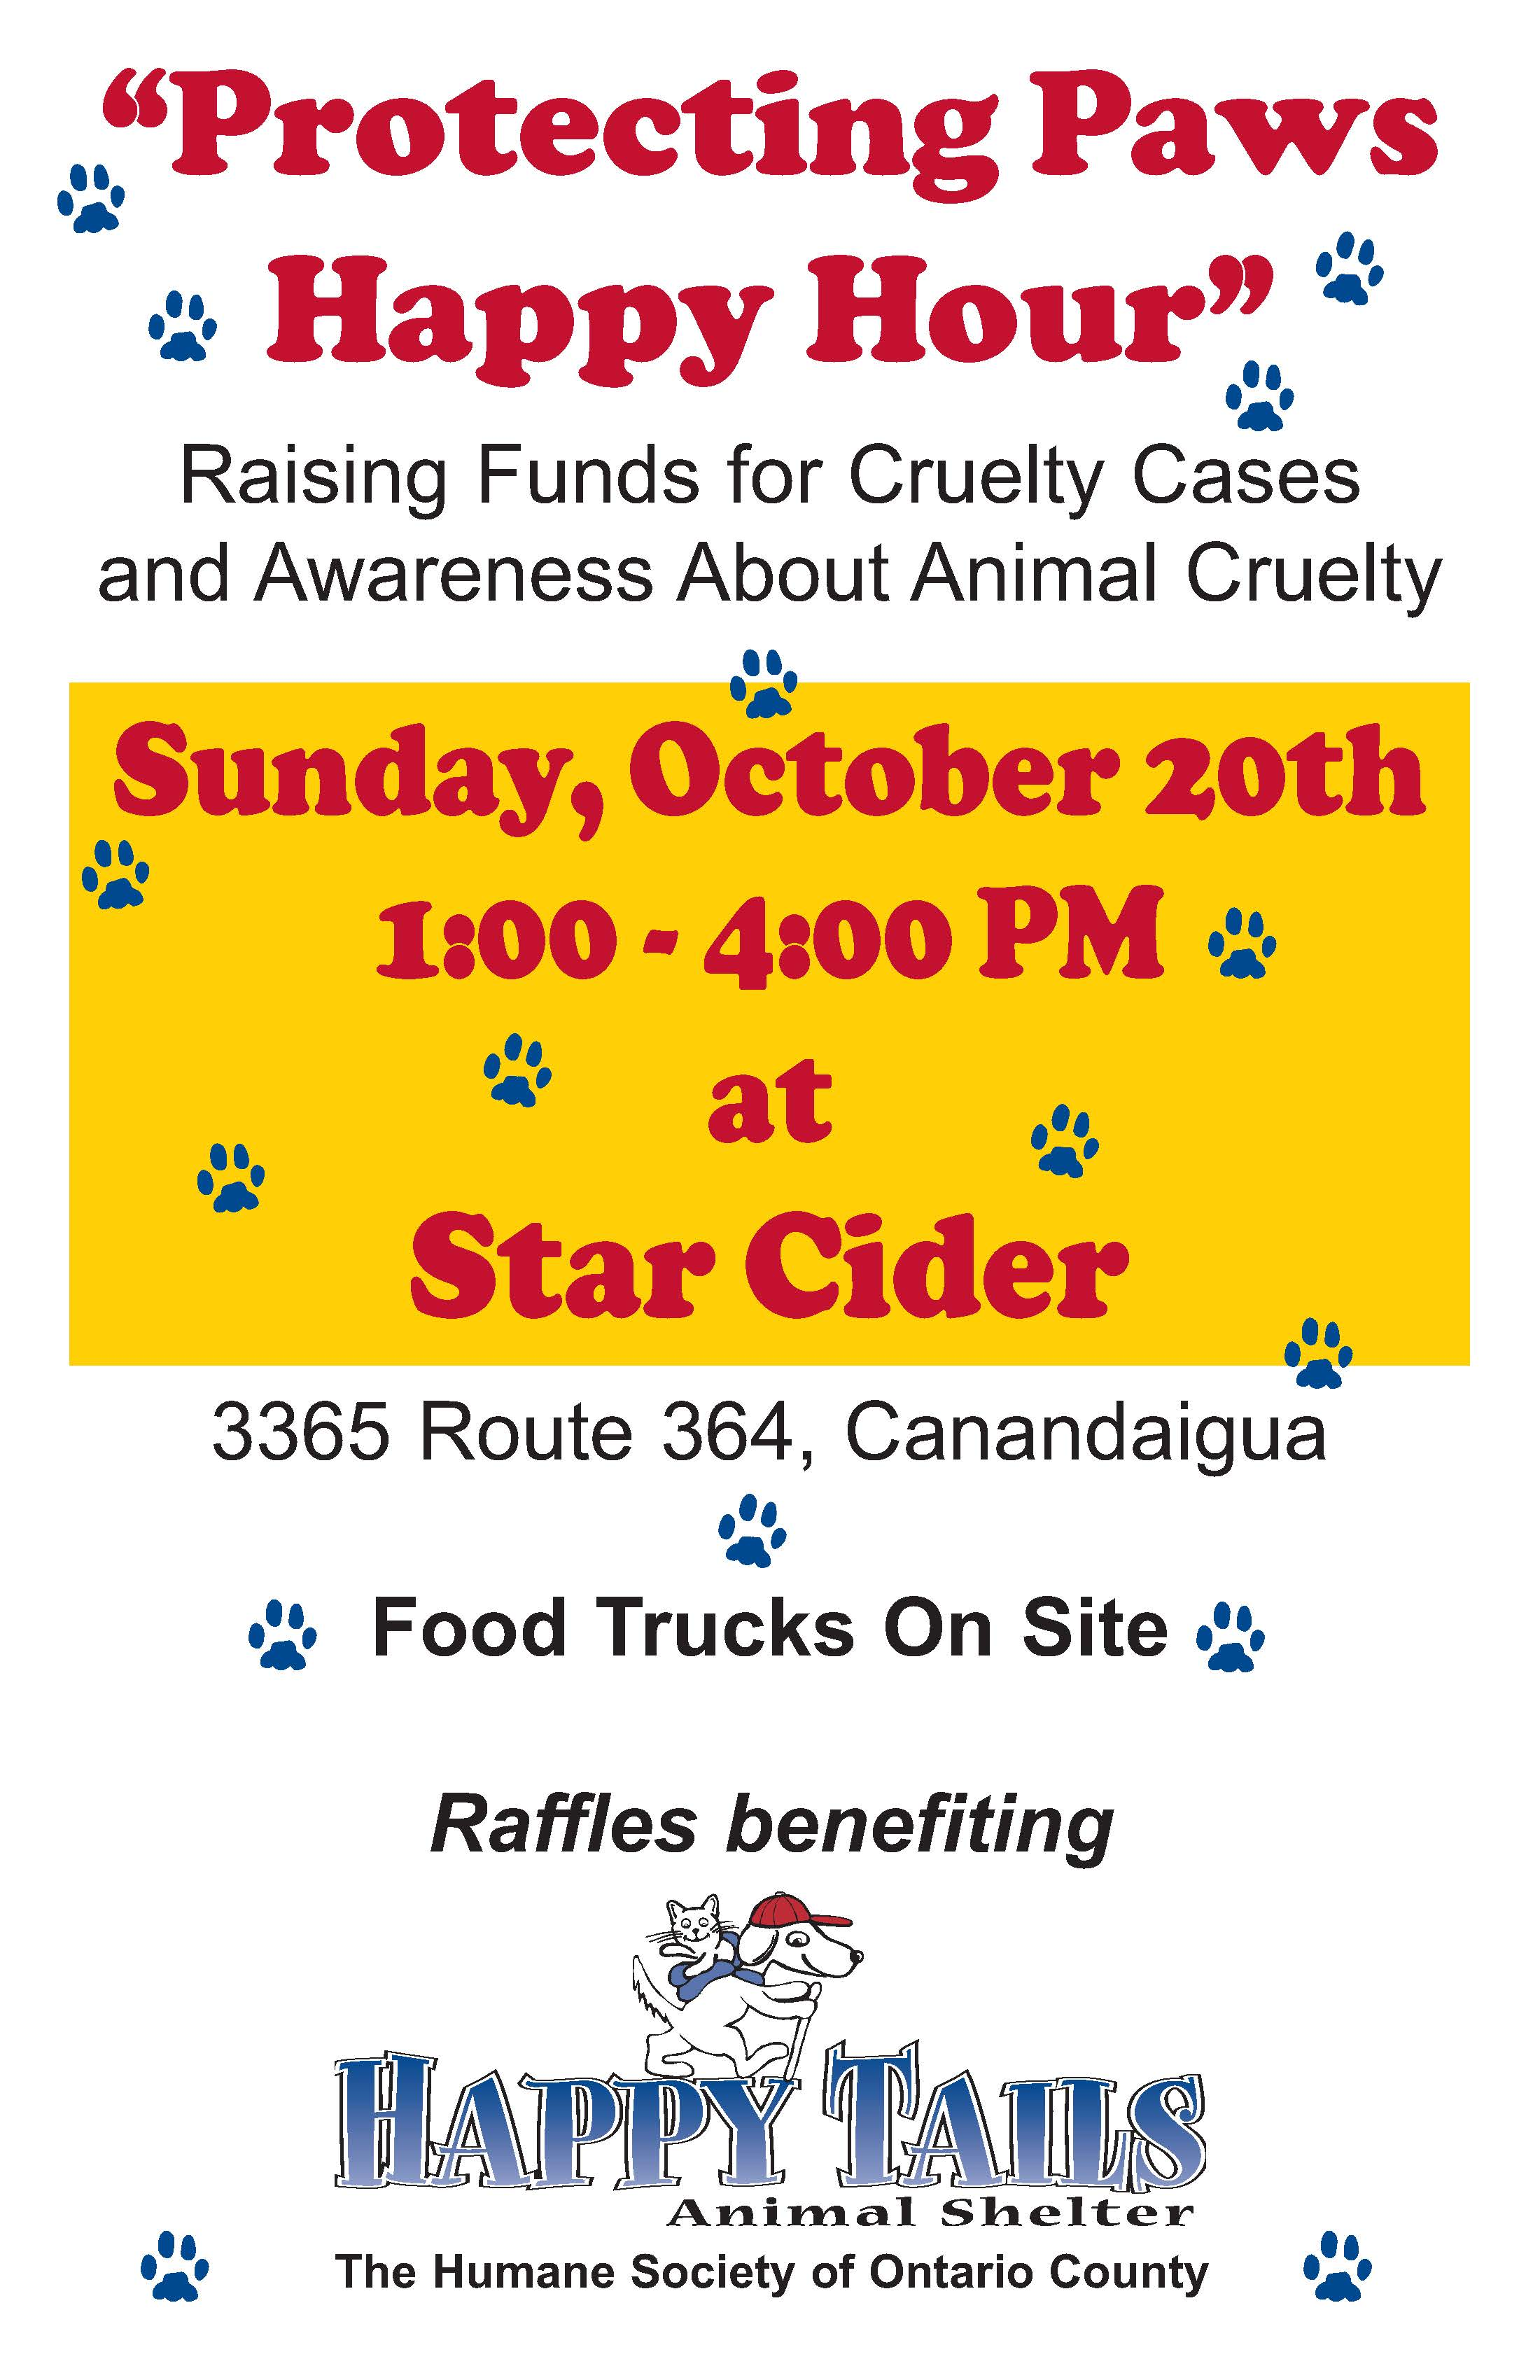 Protecting Paws Happy Hour Oct, 20 2019 Raising funds for cruelty cases and awarness about animal cruelty. At the Star Cider in Canandaiguia.